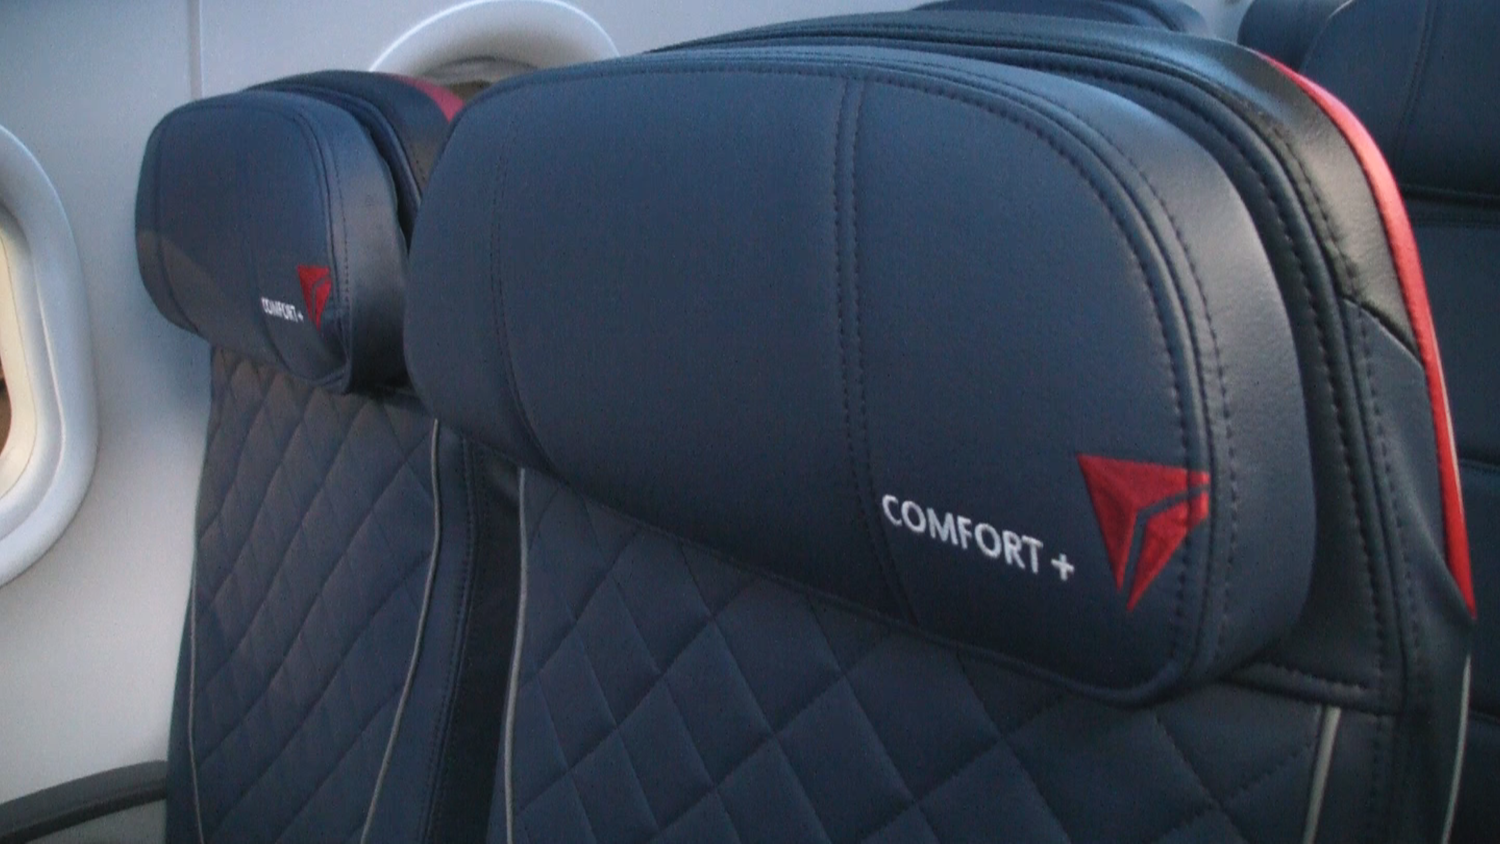 Find The Quot Quot In These A319 Delta Comfort Seats Video